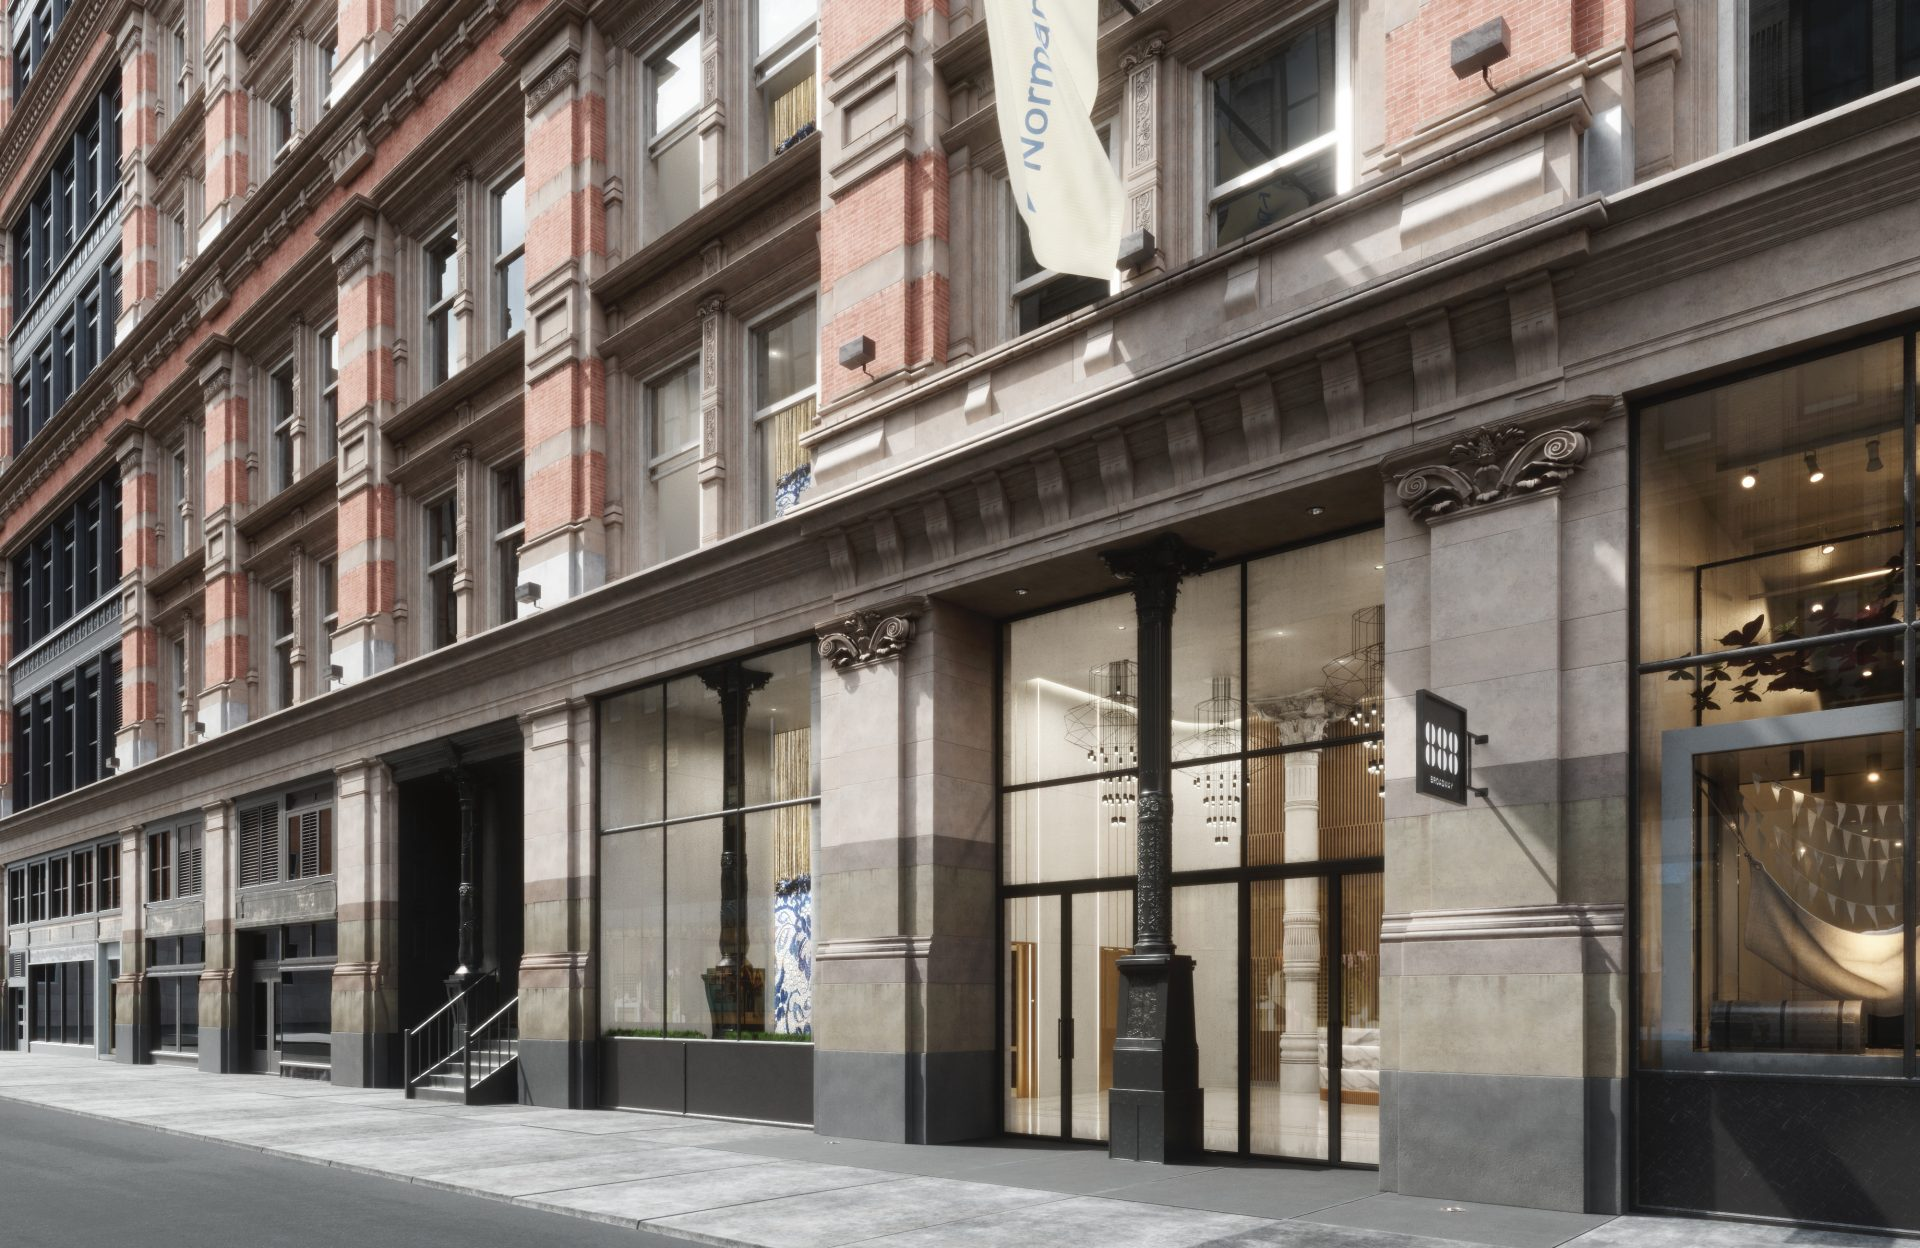 Rendering of the new street frontage at 888 Broadway